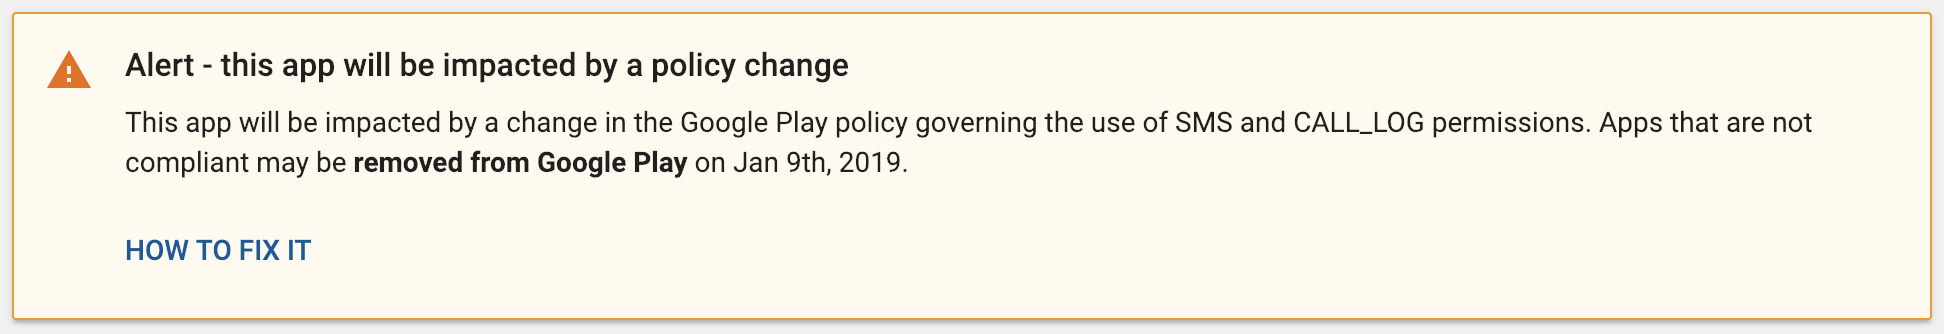 Google's new SMS and call permission policy is crippling